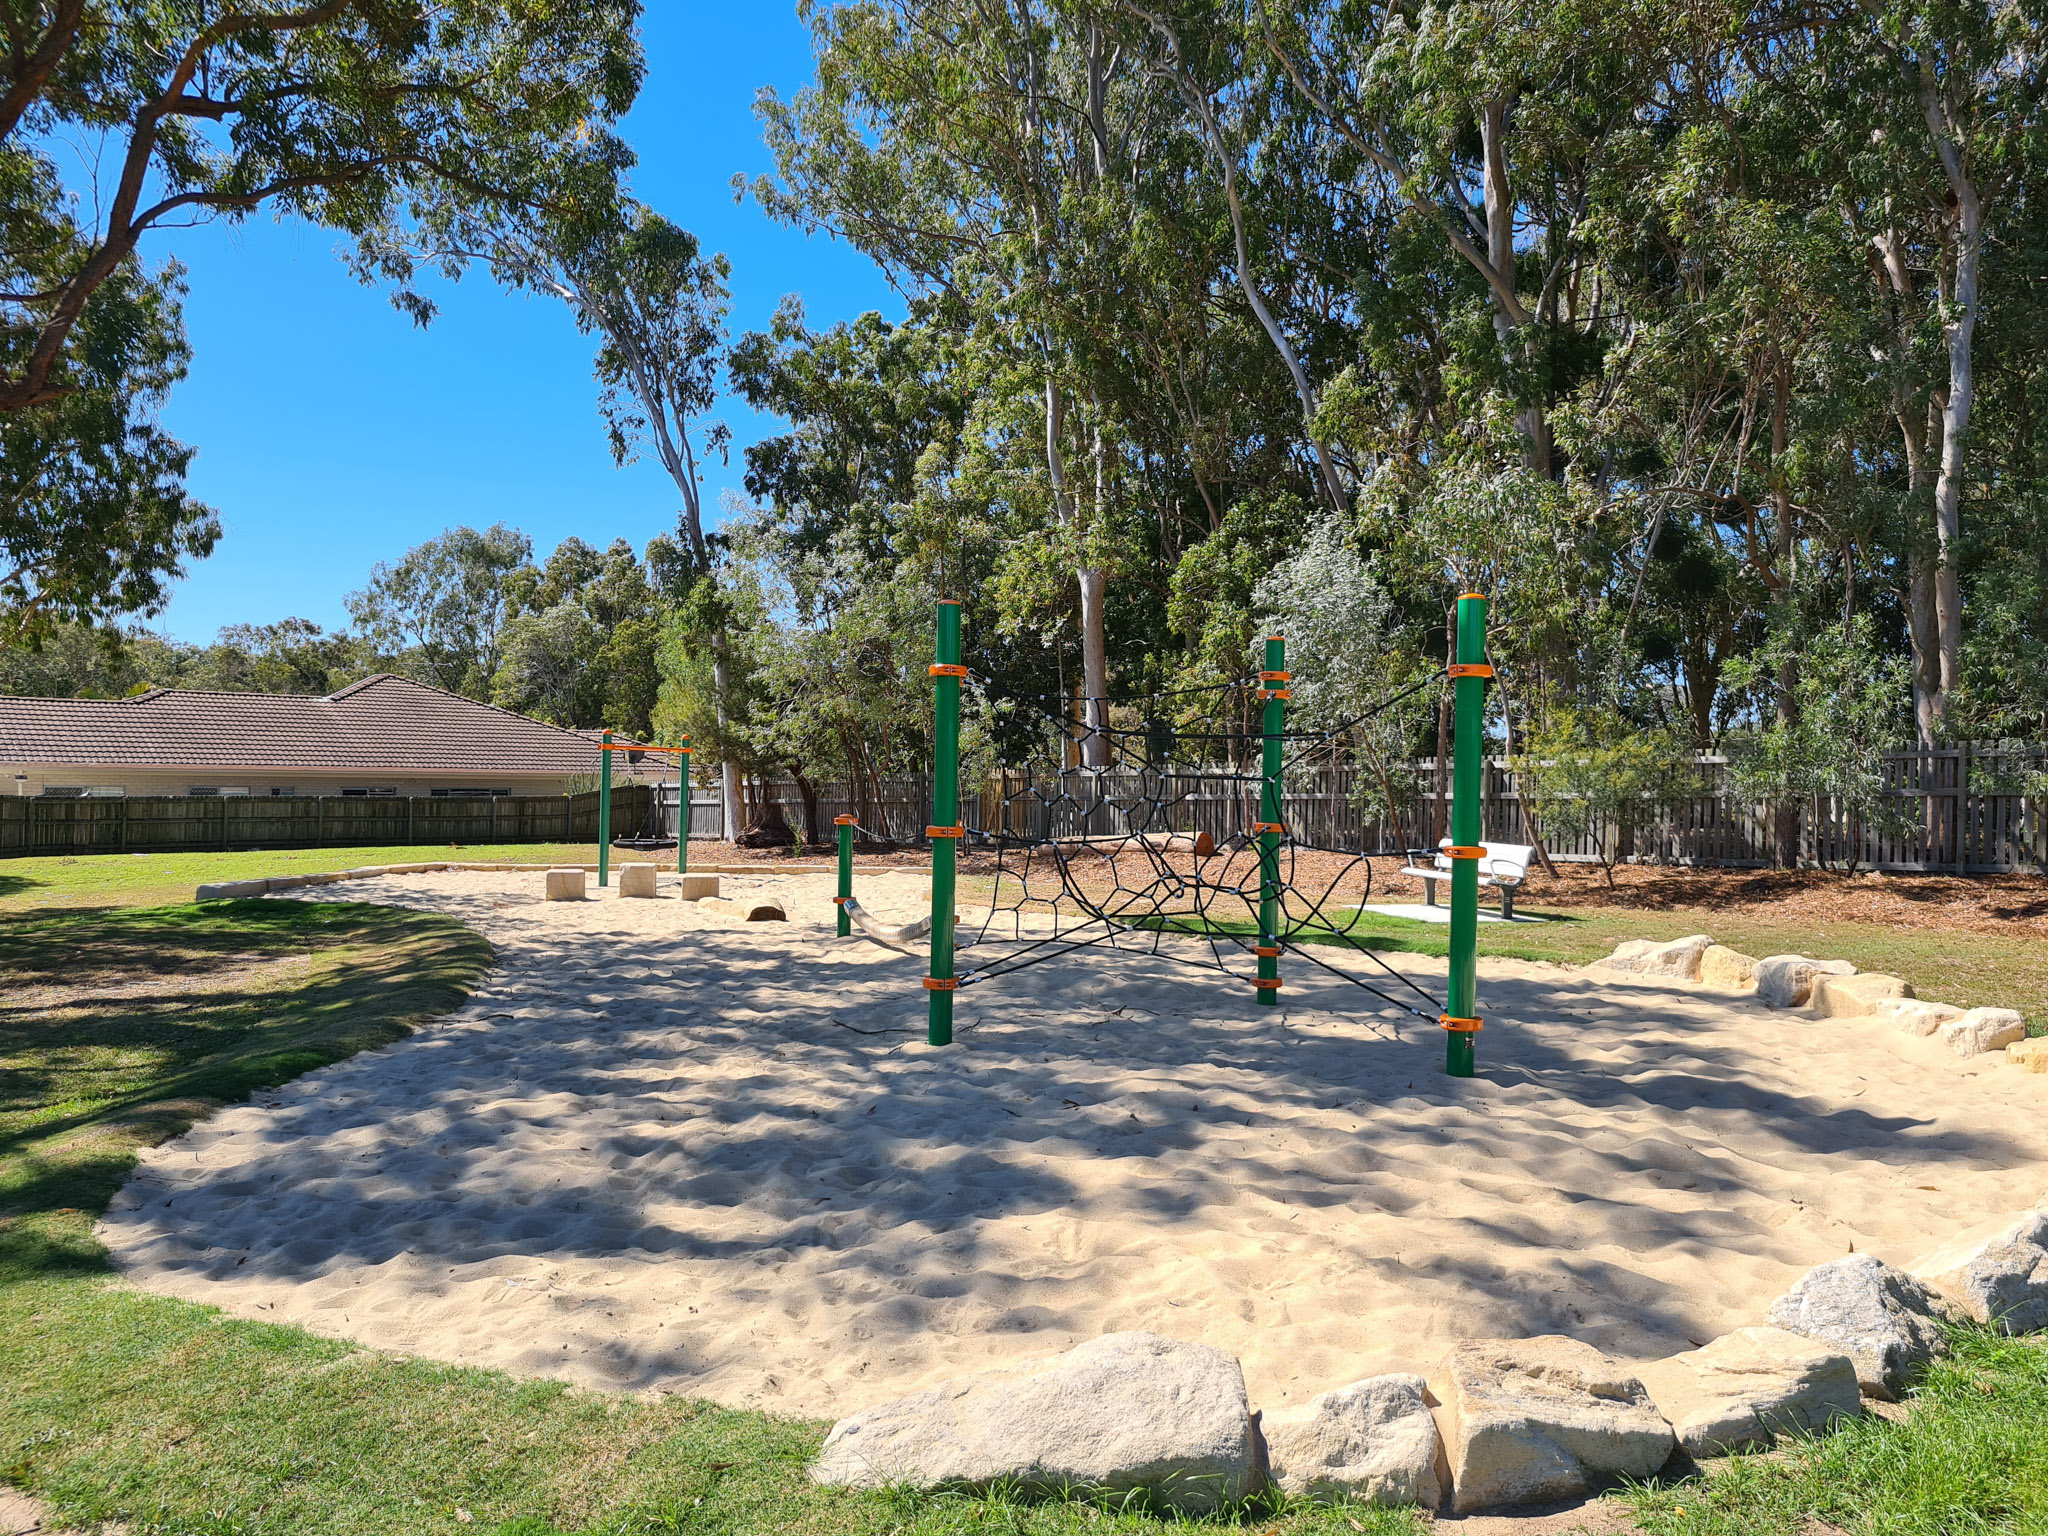 riley-peter-place-park-rope-play